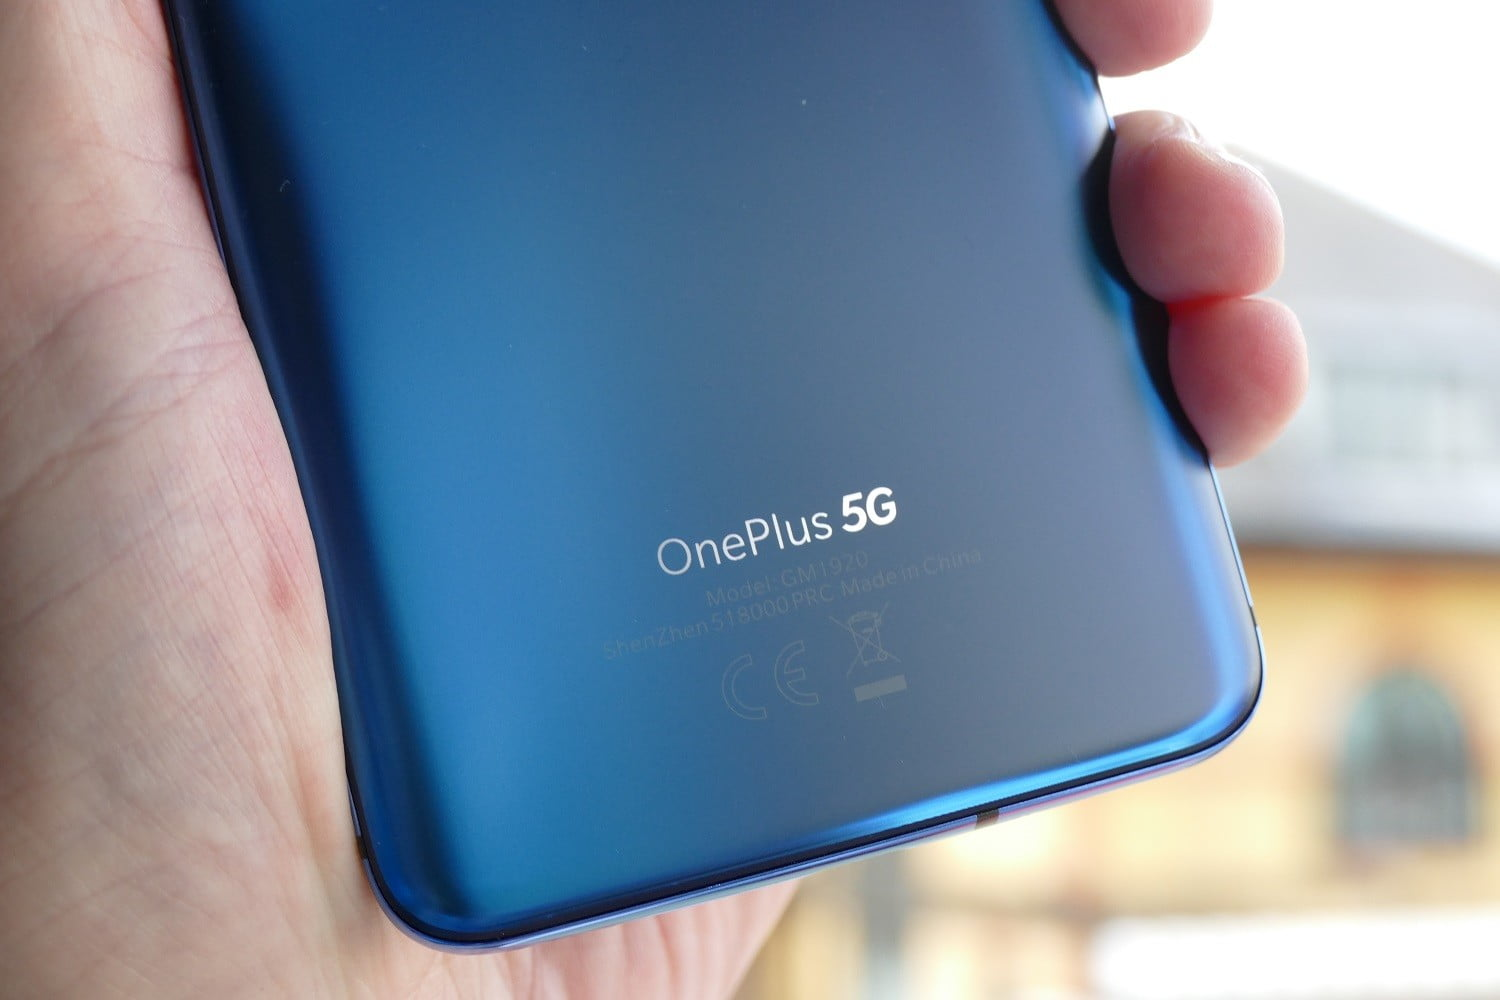 """OnePlus """"5G Edition"""" Smartphone Unboxing – 5G Speedtest (Minecraft, GTA San Andreas, Fortnite)"""